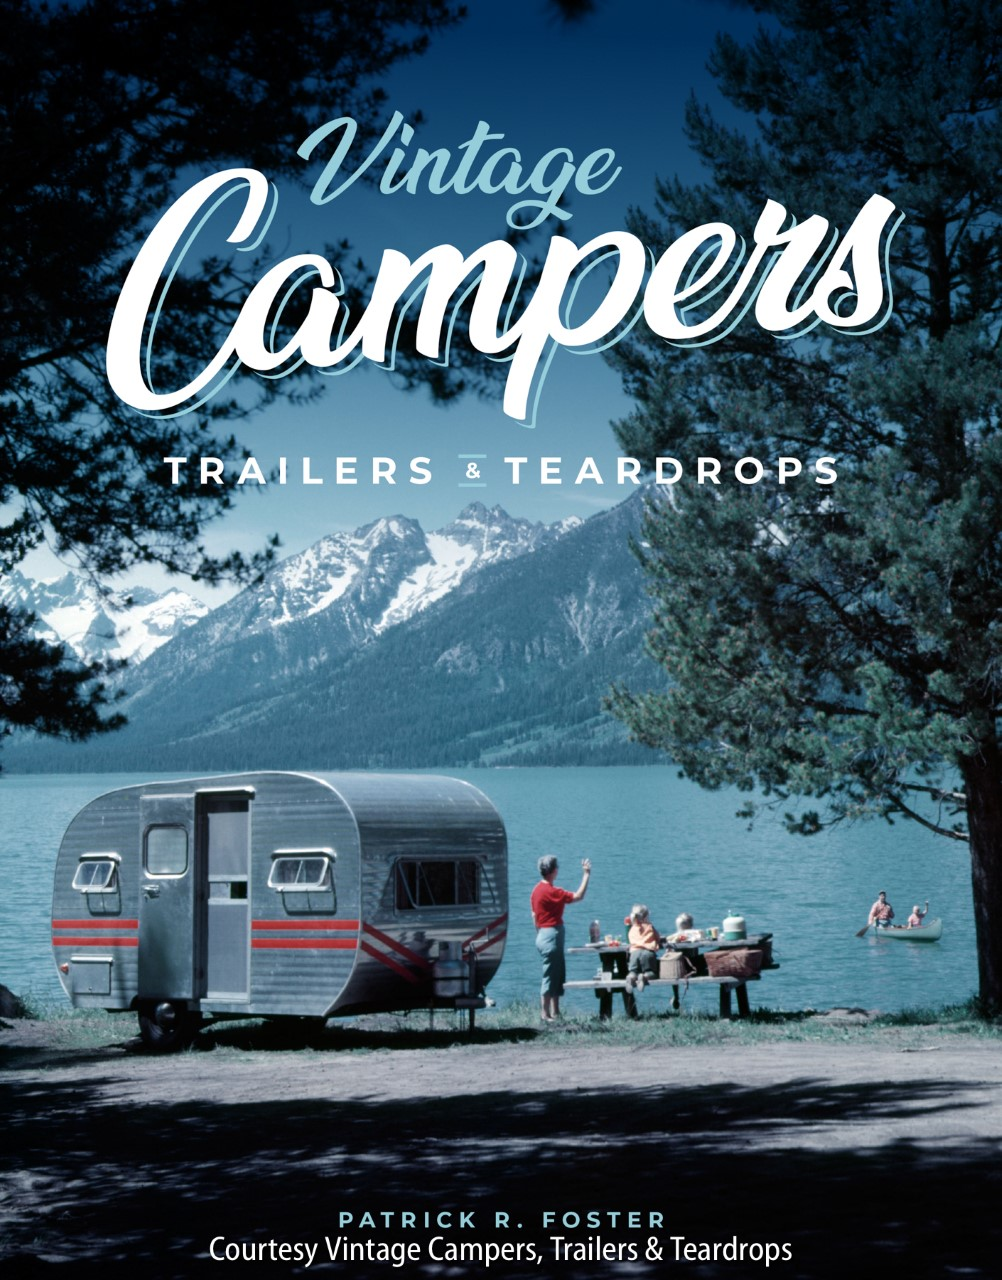 AutoMatters & More: Vintage Campers, Trailers & Teardrops